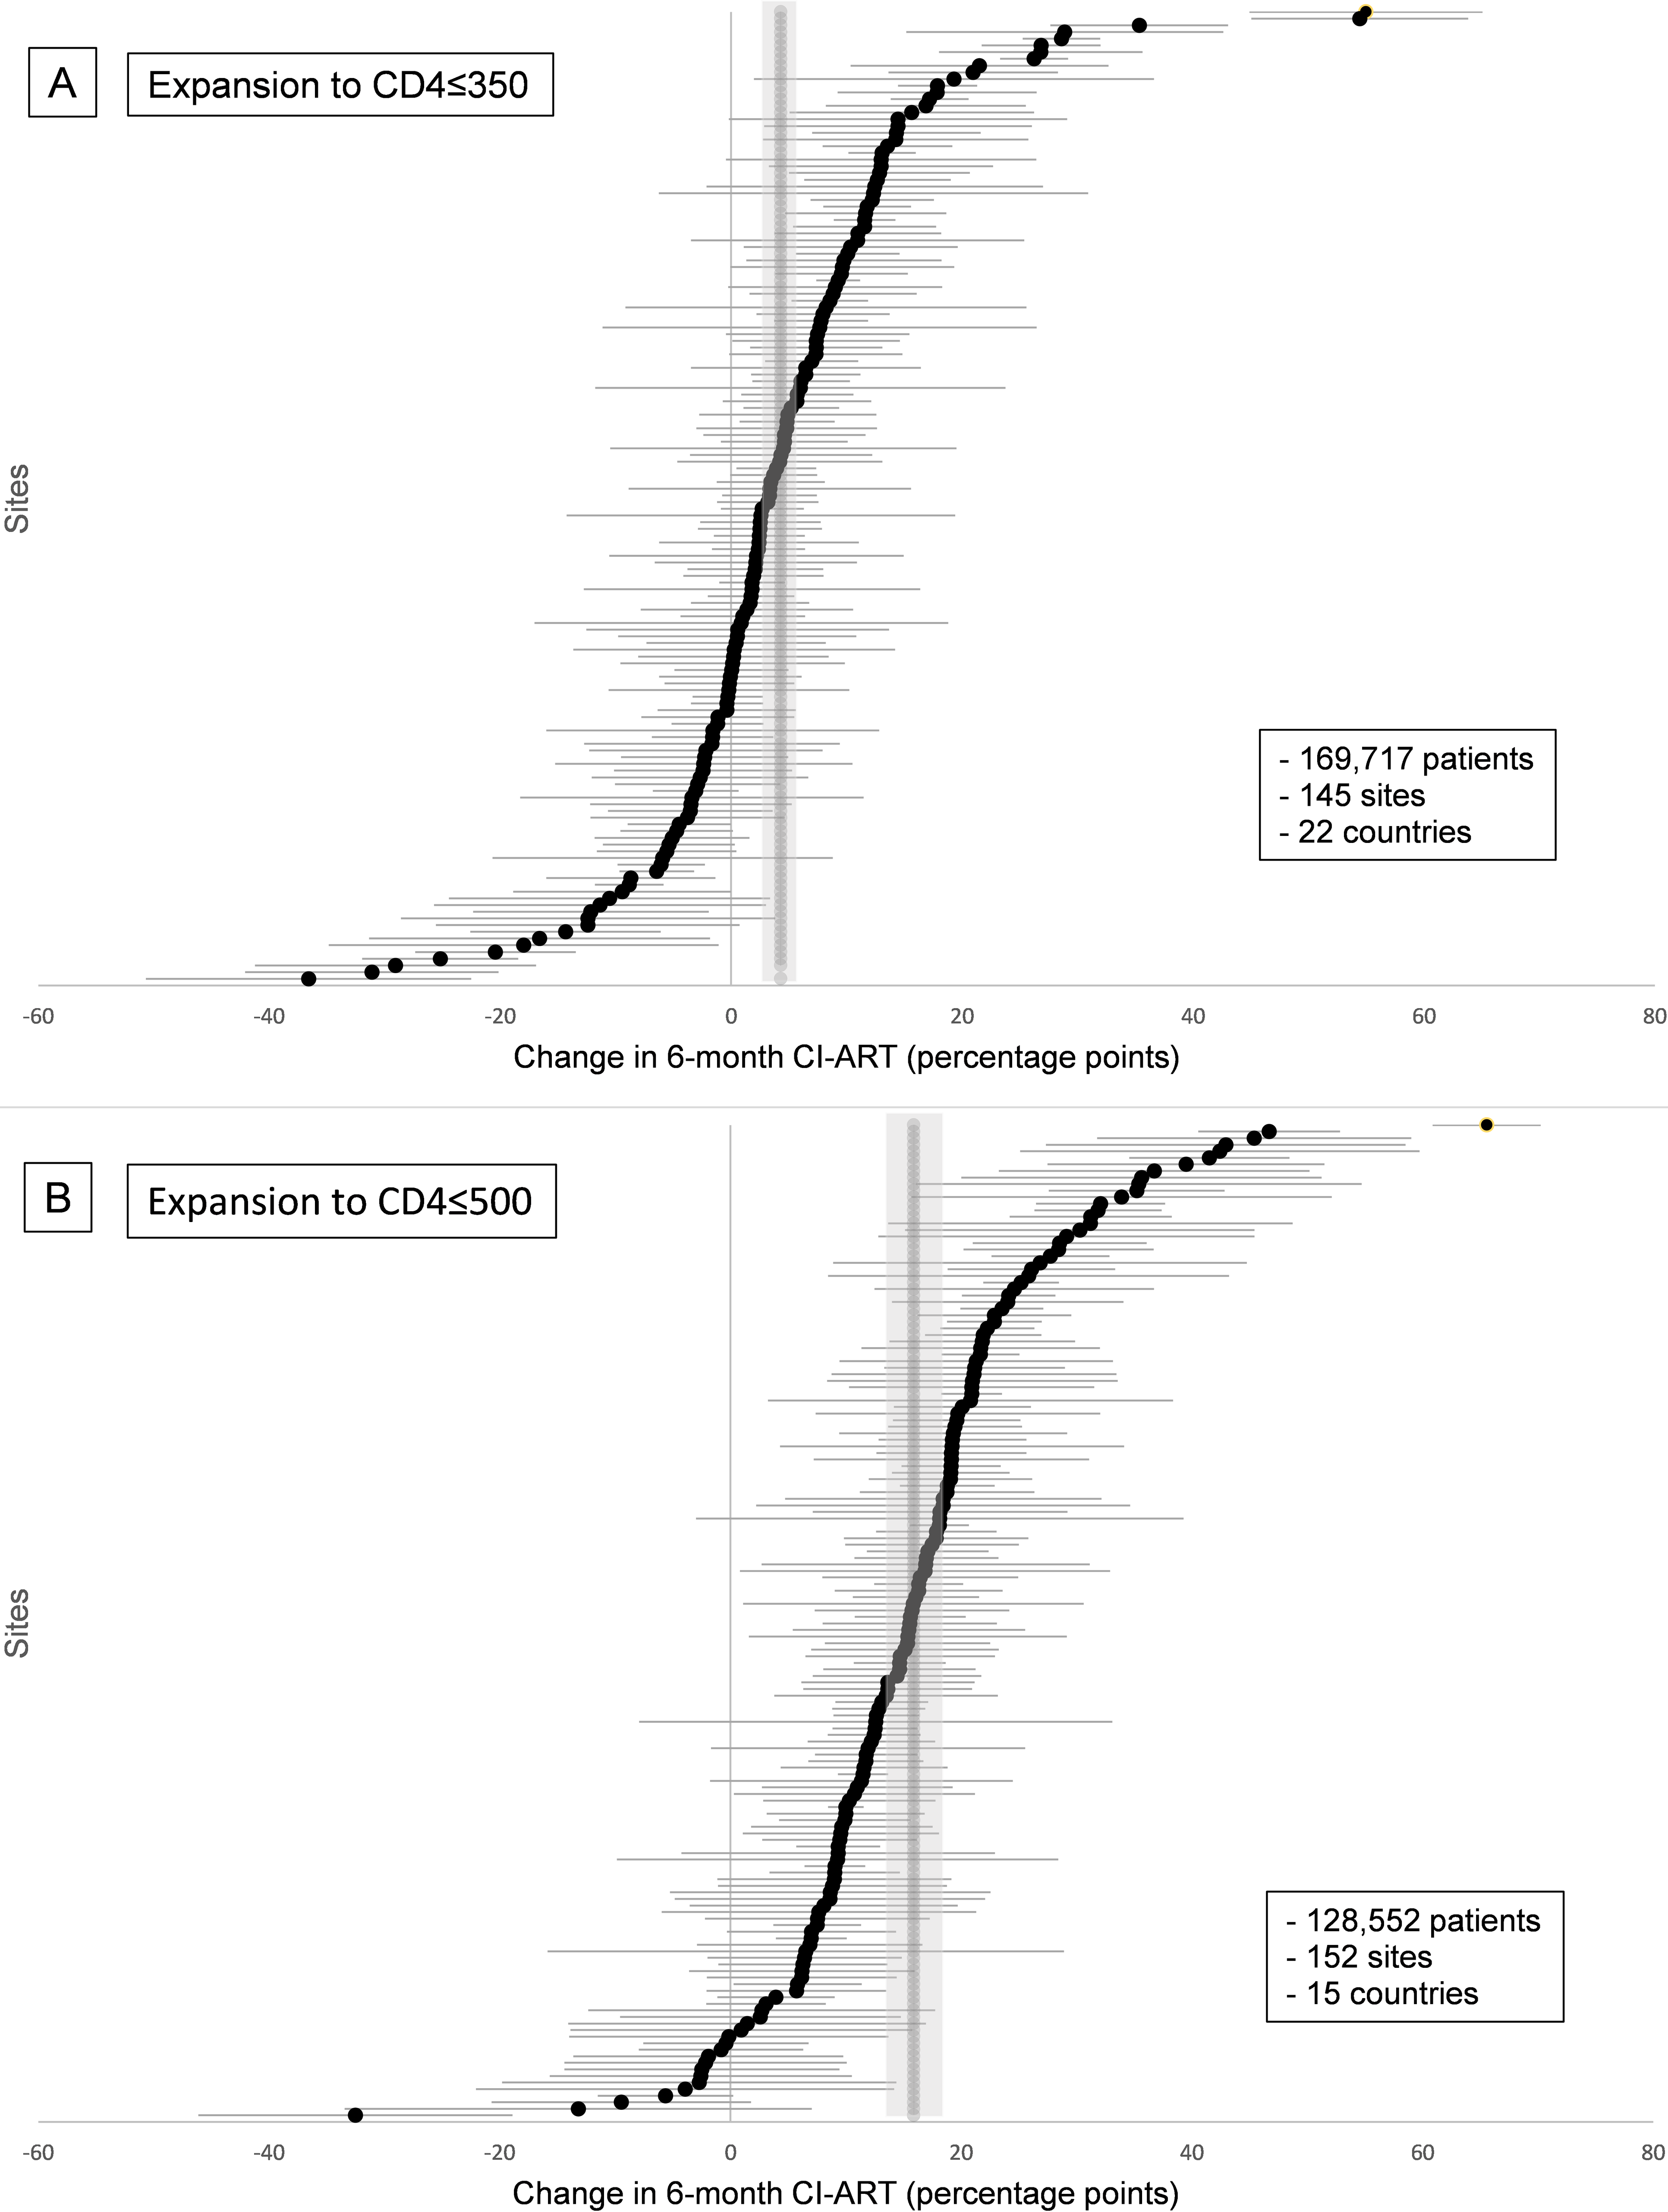 Site-level changes in 6-month cumulative incidence of antiretroviral treatment initiation (CI-ART) after guideline expansions to (A) CD4 ≤ 350 and (B) CD4 ≤ 500.